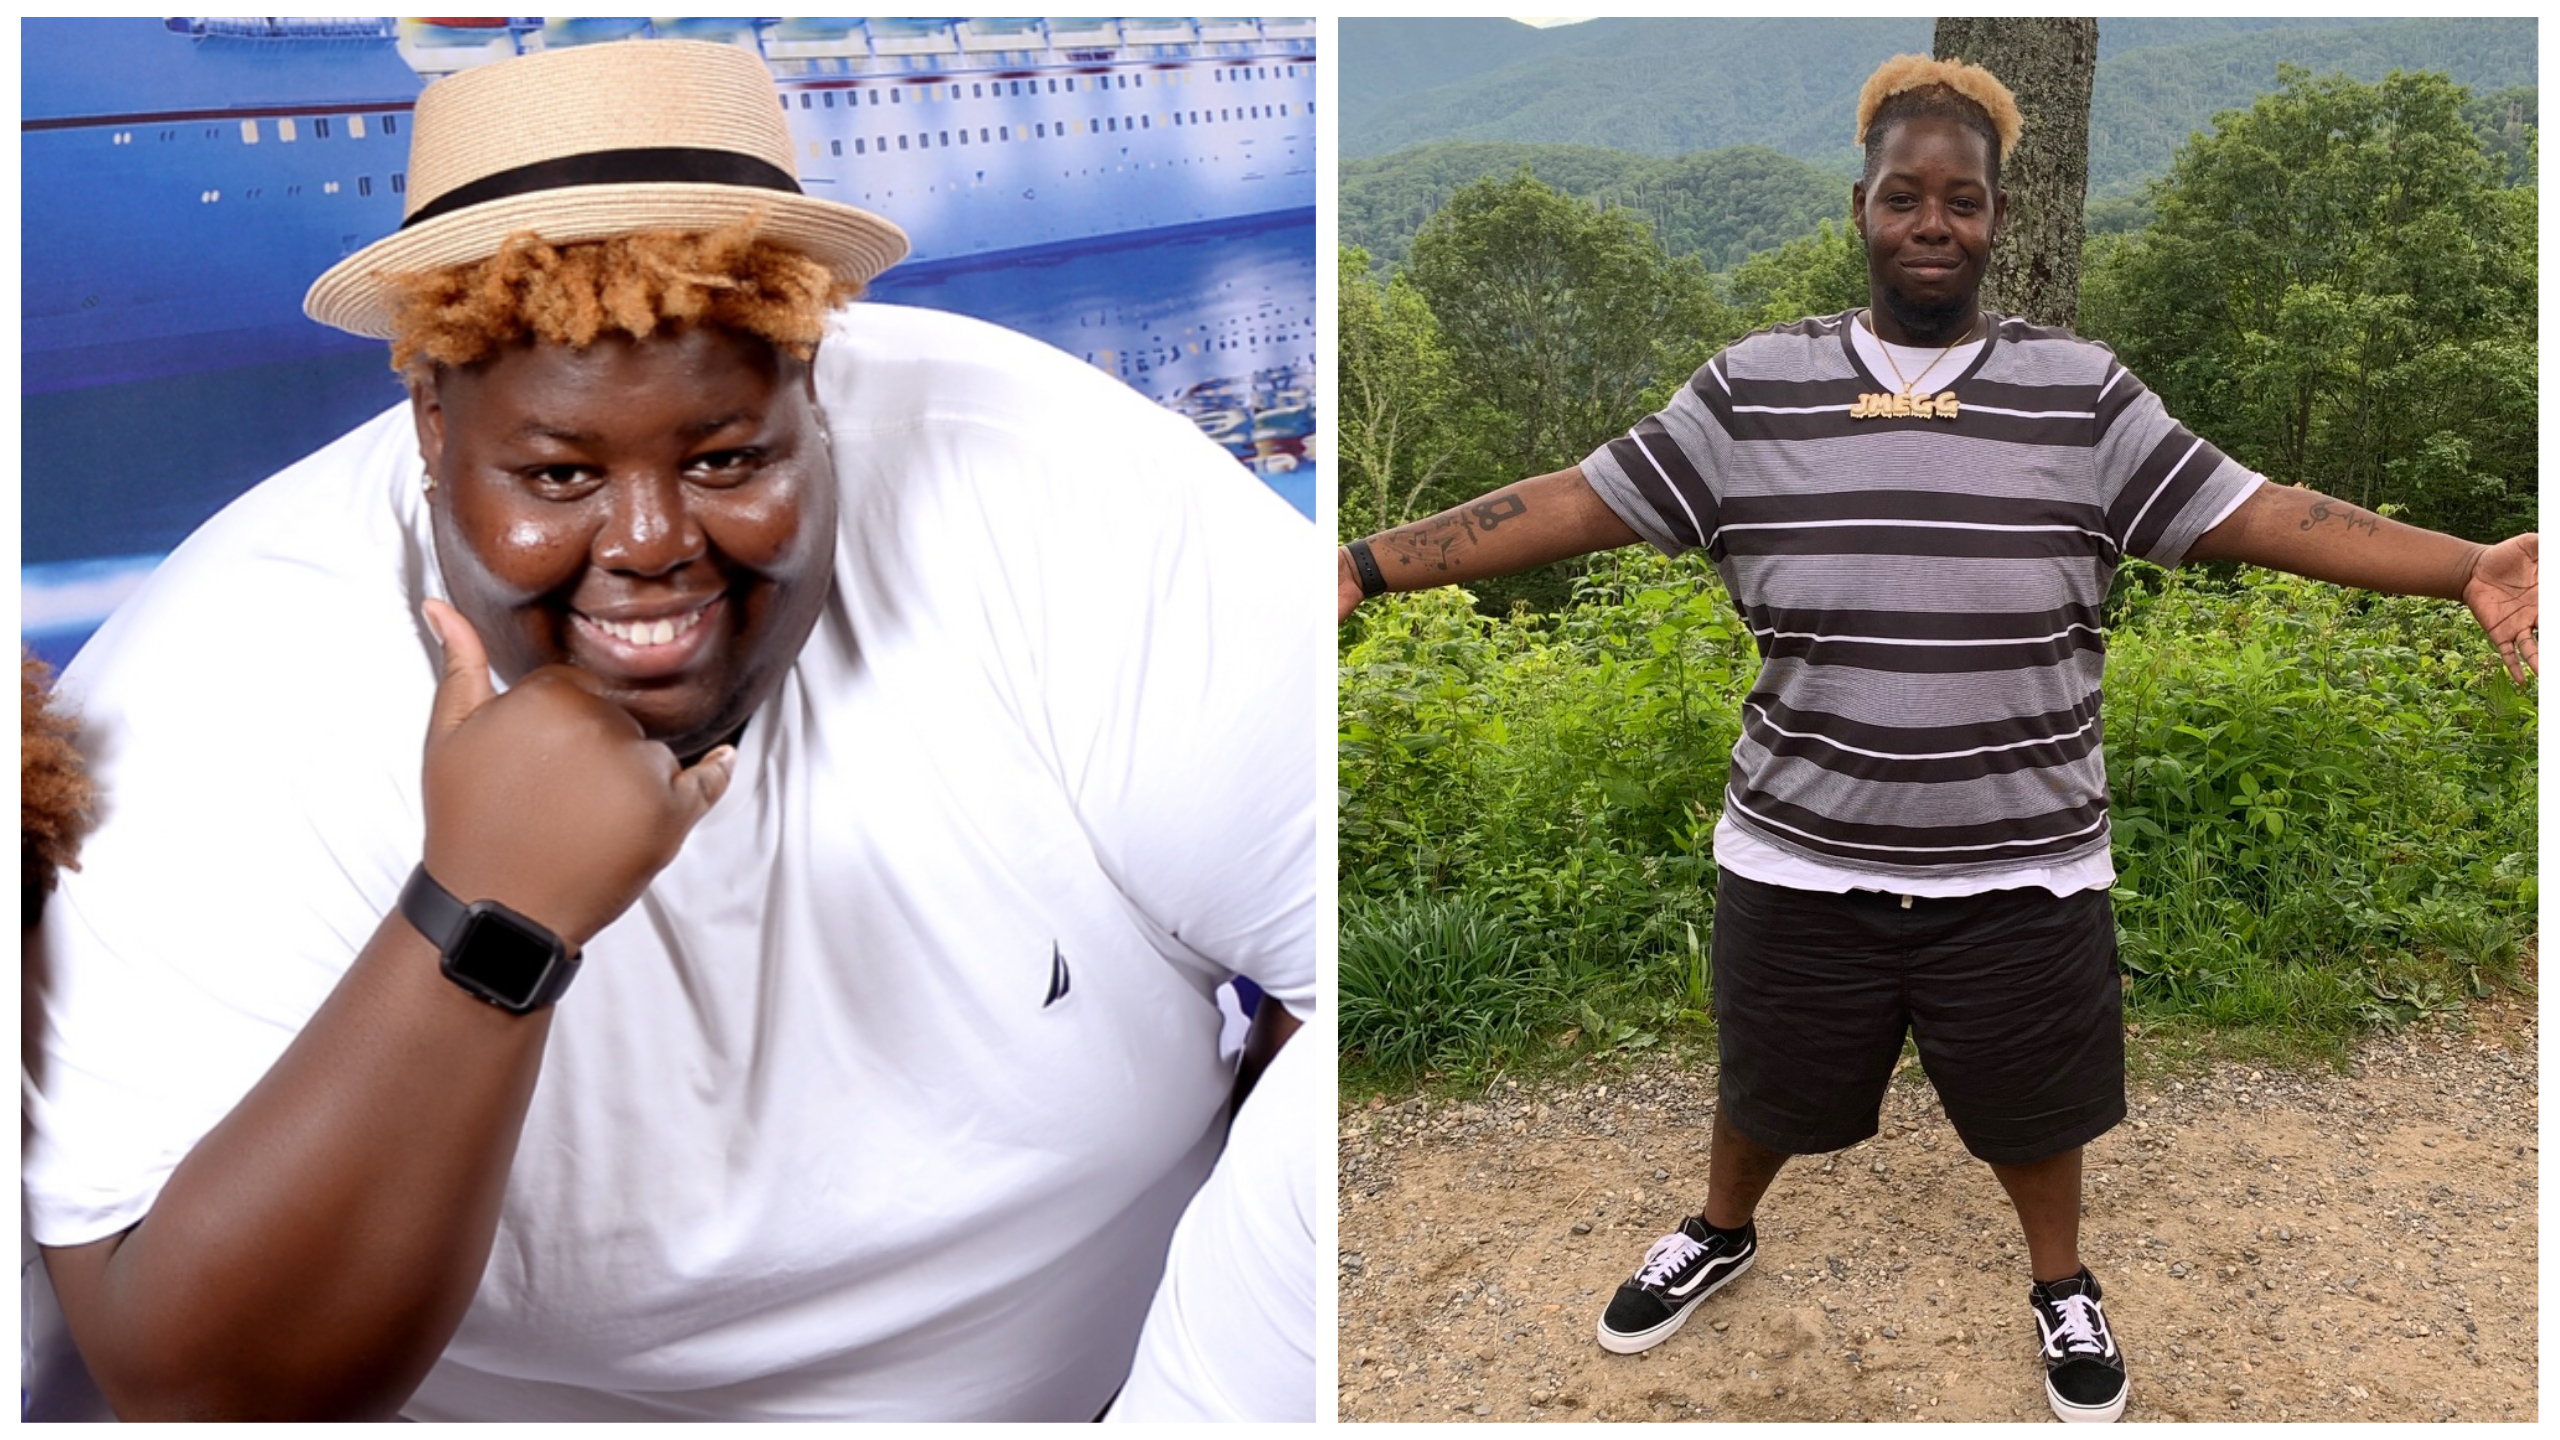 Joshua Diggs knew he needed expert help after struggling his entire life to keep his weight down. Through the support of Atrium Health Weight Management, Joshua gained the edge he needed to lose over 200 pounds and counting.